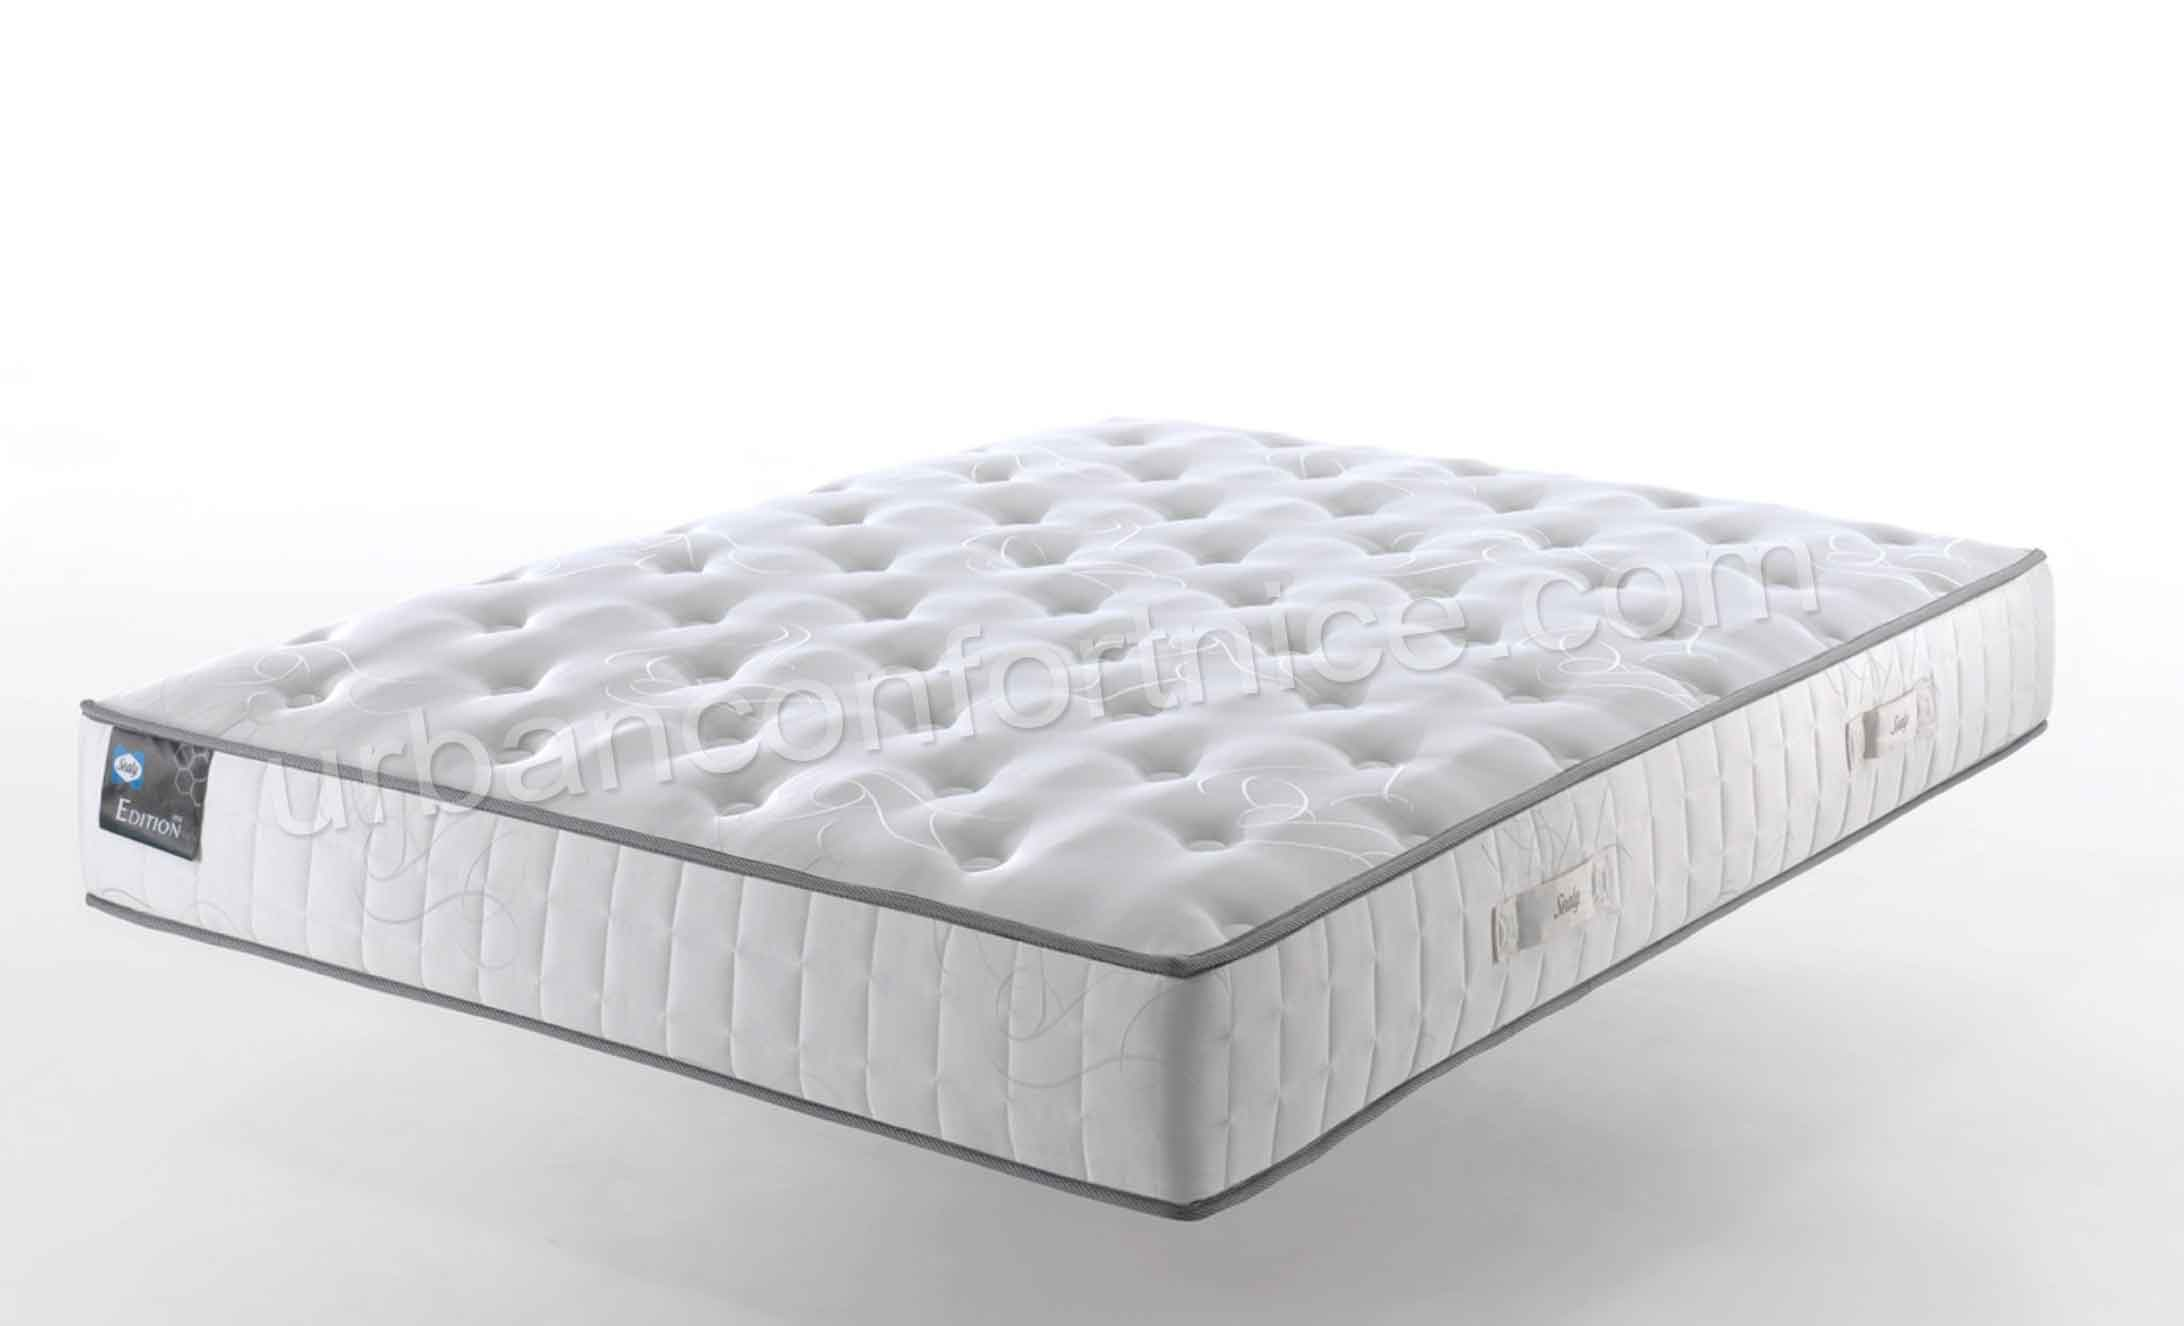 matelas merinos urban cool sommier x ub design chatel x with matelas merinos urban great lit. Black Bedroom Furniture Sets. Home Design Ideas